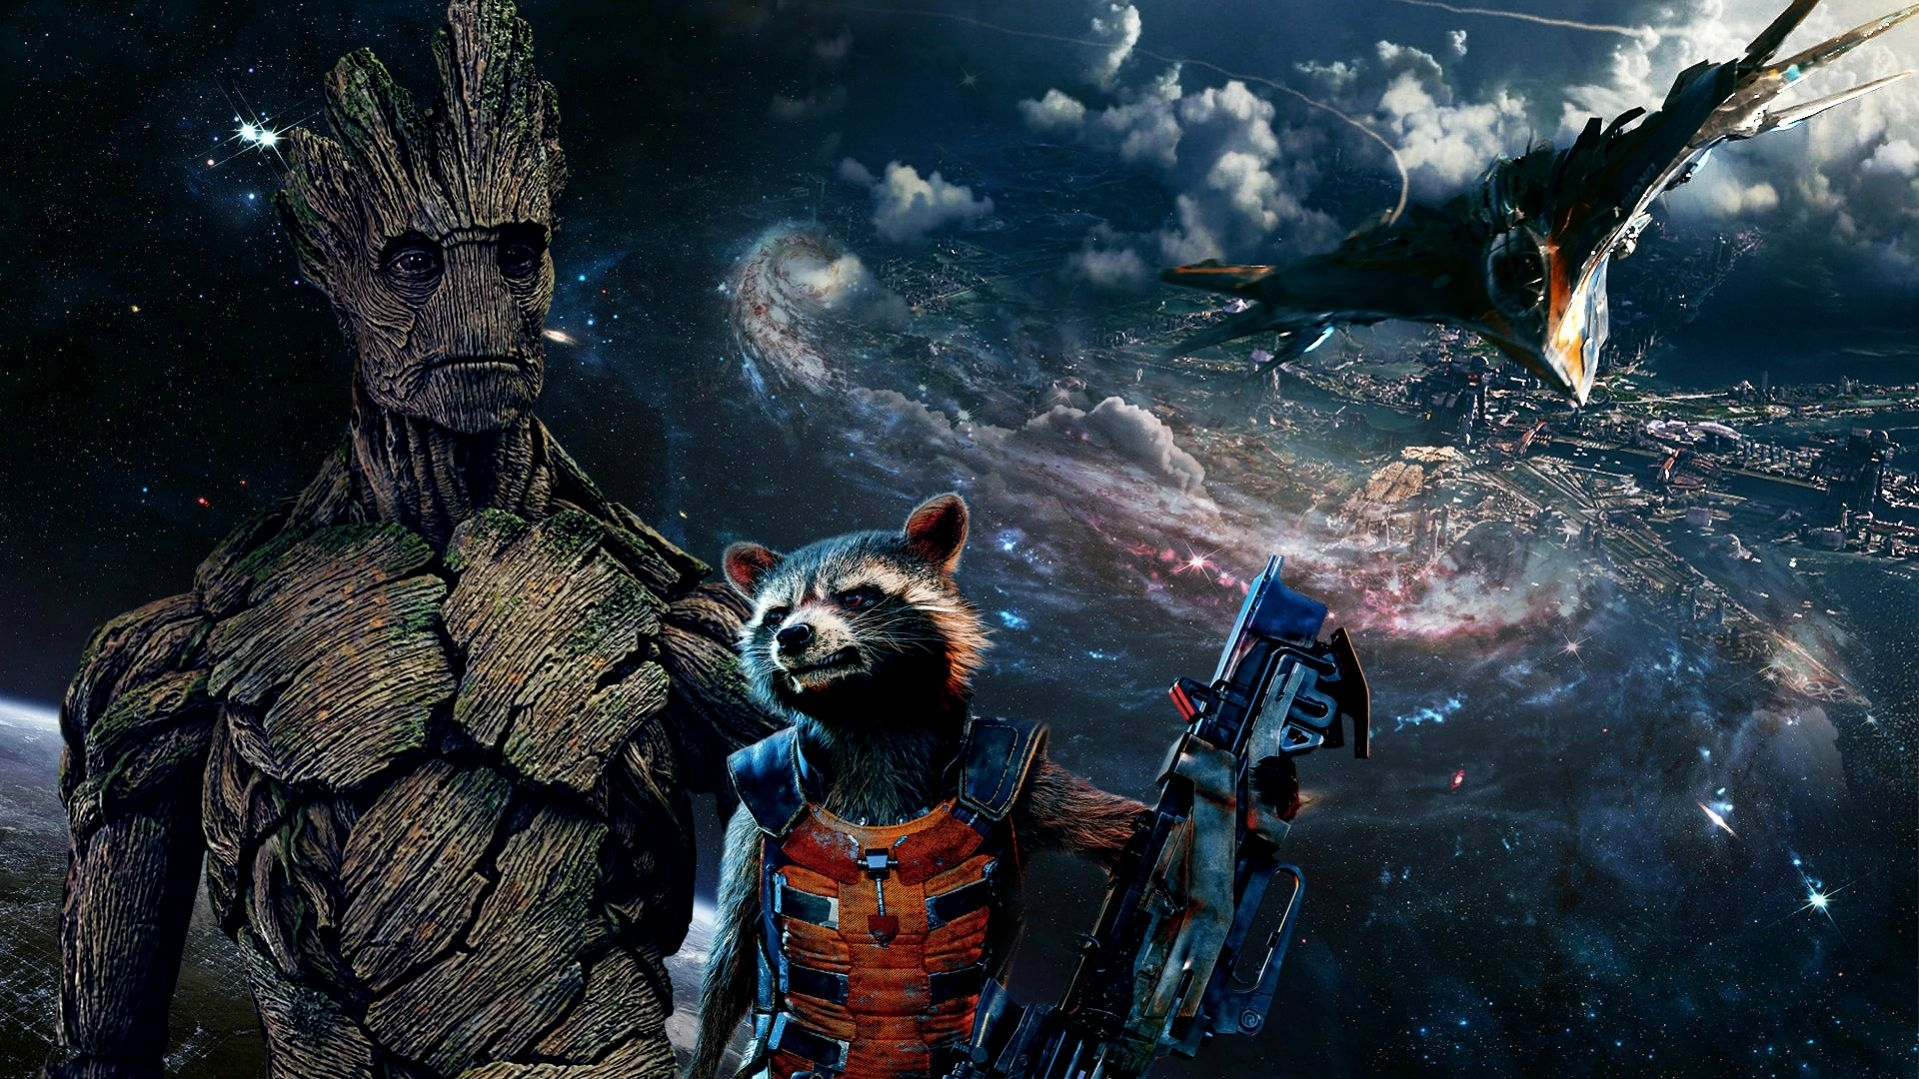 groot and rocket wallpaper [1920x1080] : marvel